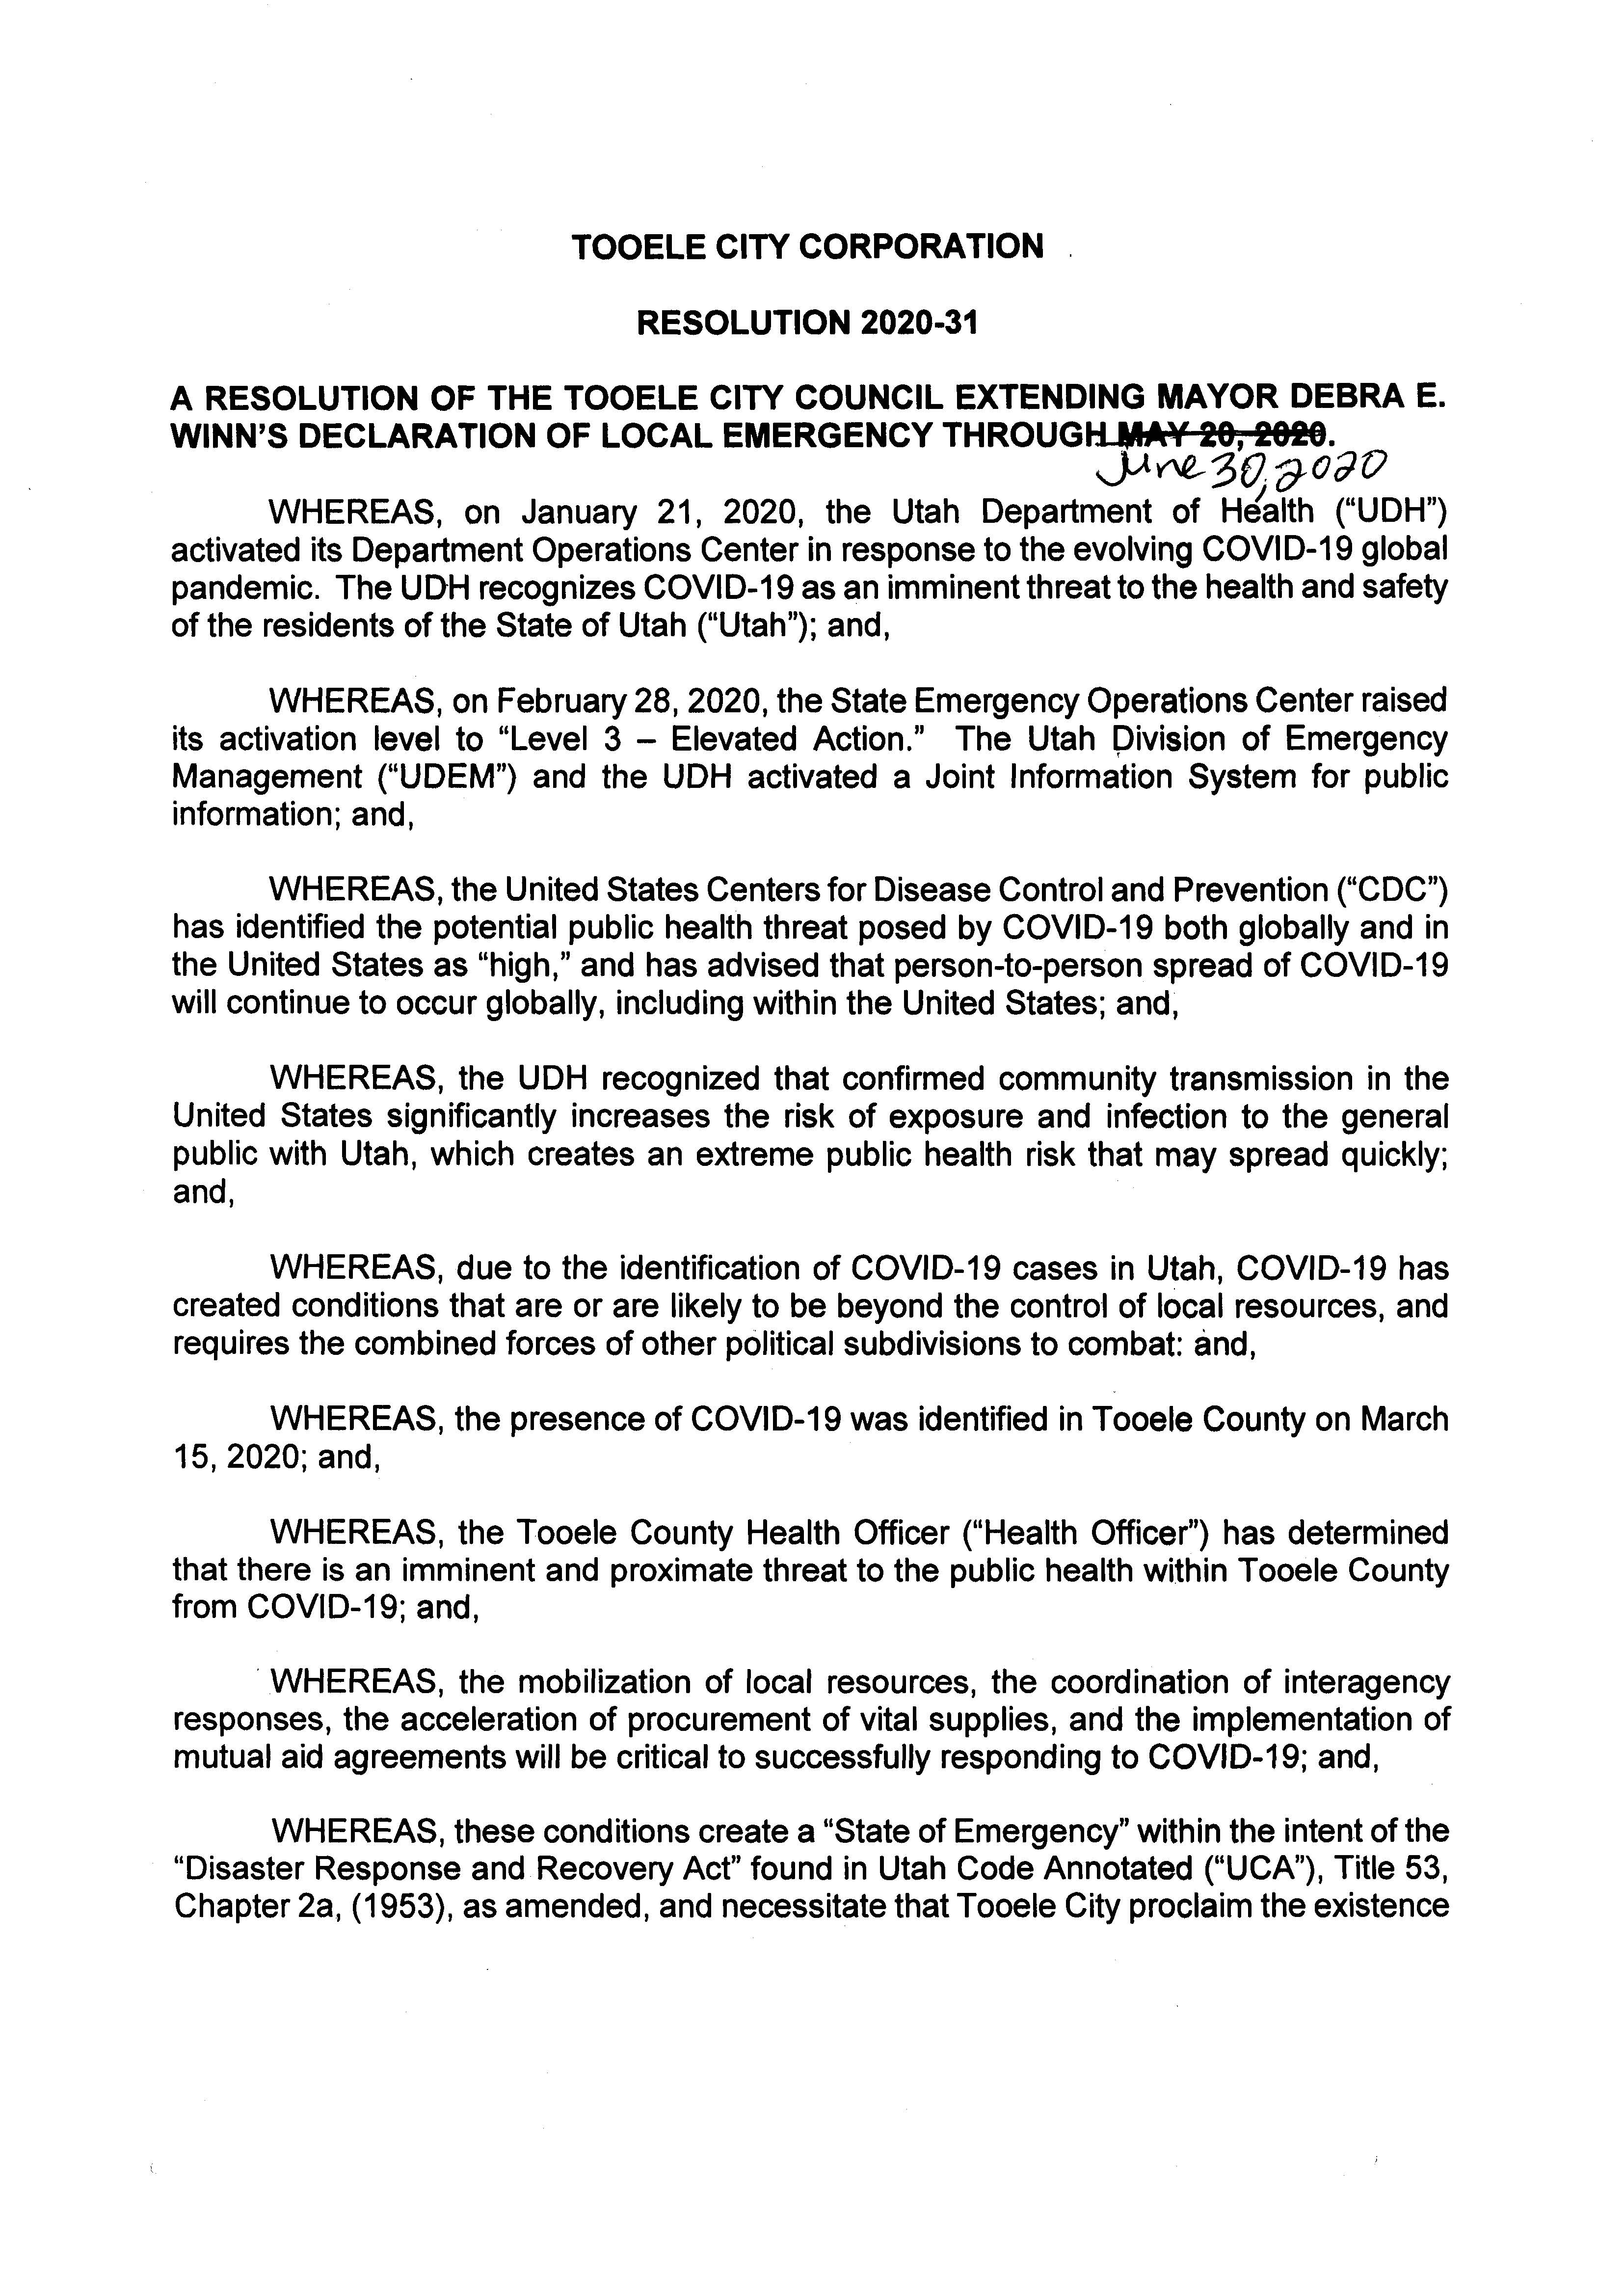 Extension of Local Emergency Declaration - April 15, 2020